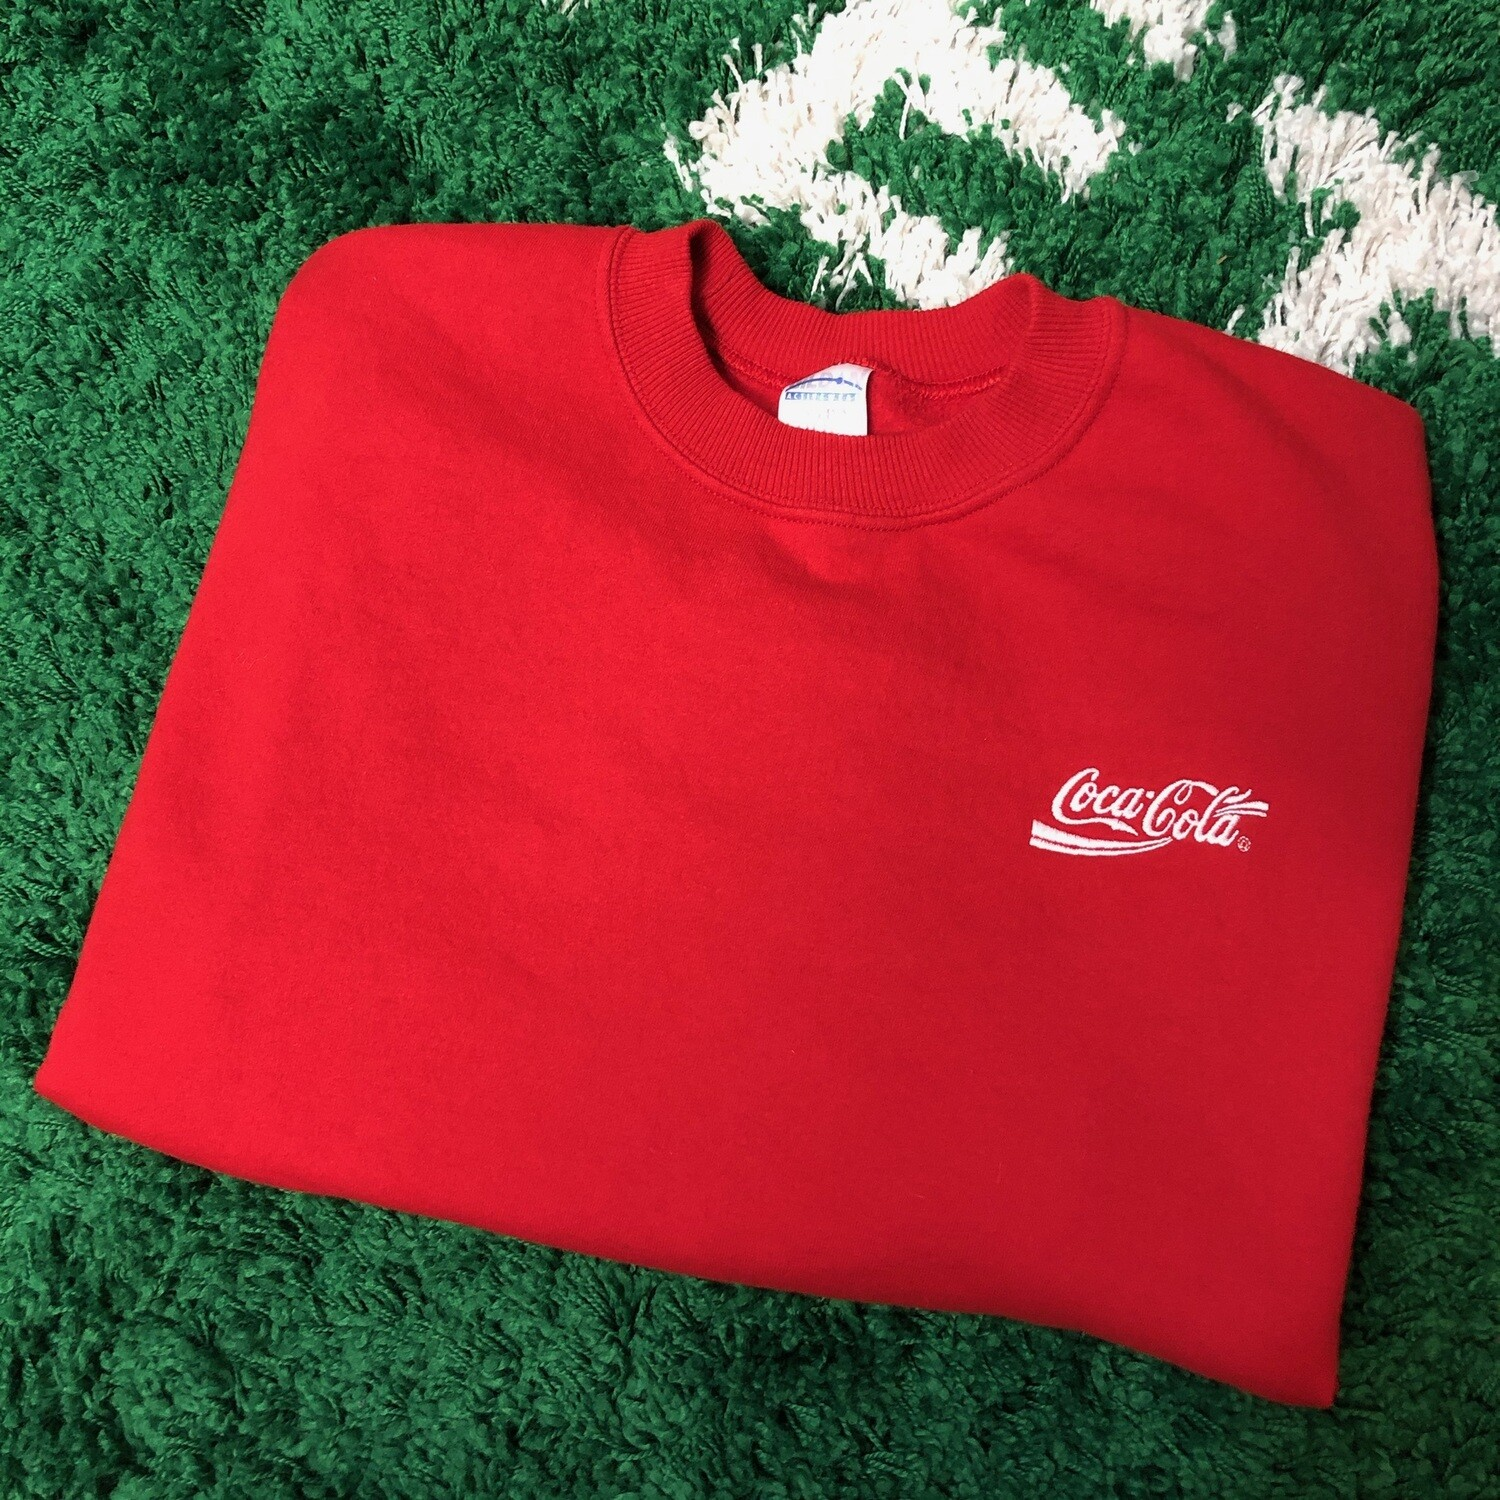 Coca-Cola Sweater Red Size Large